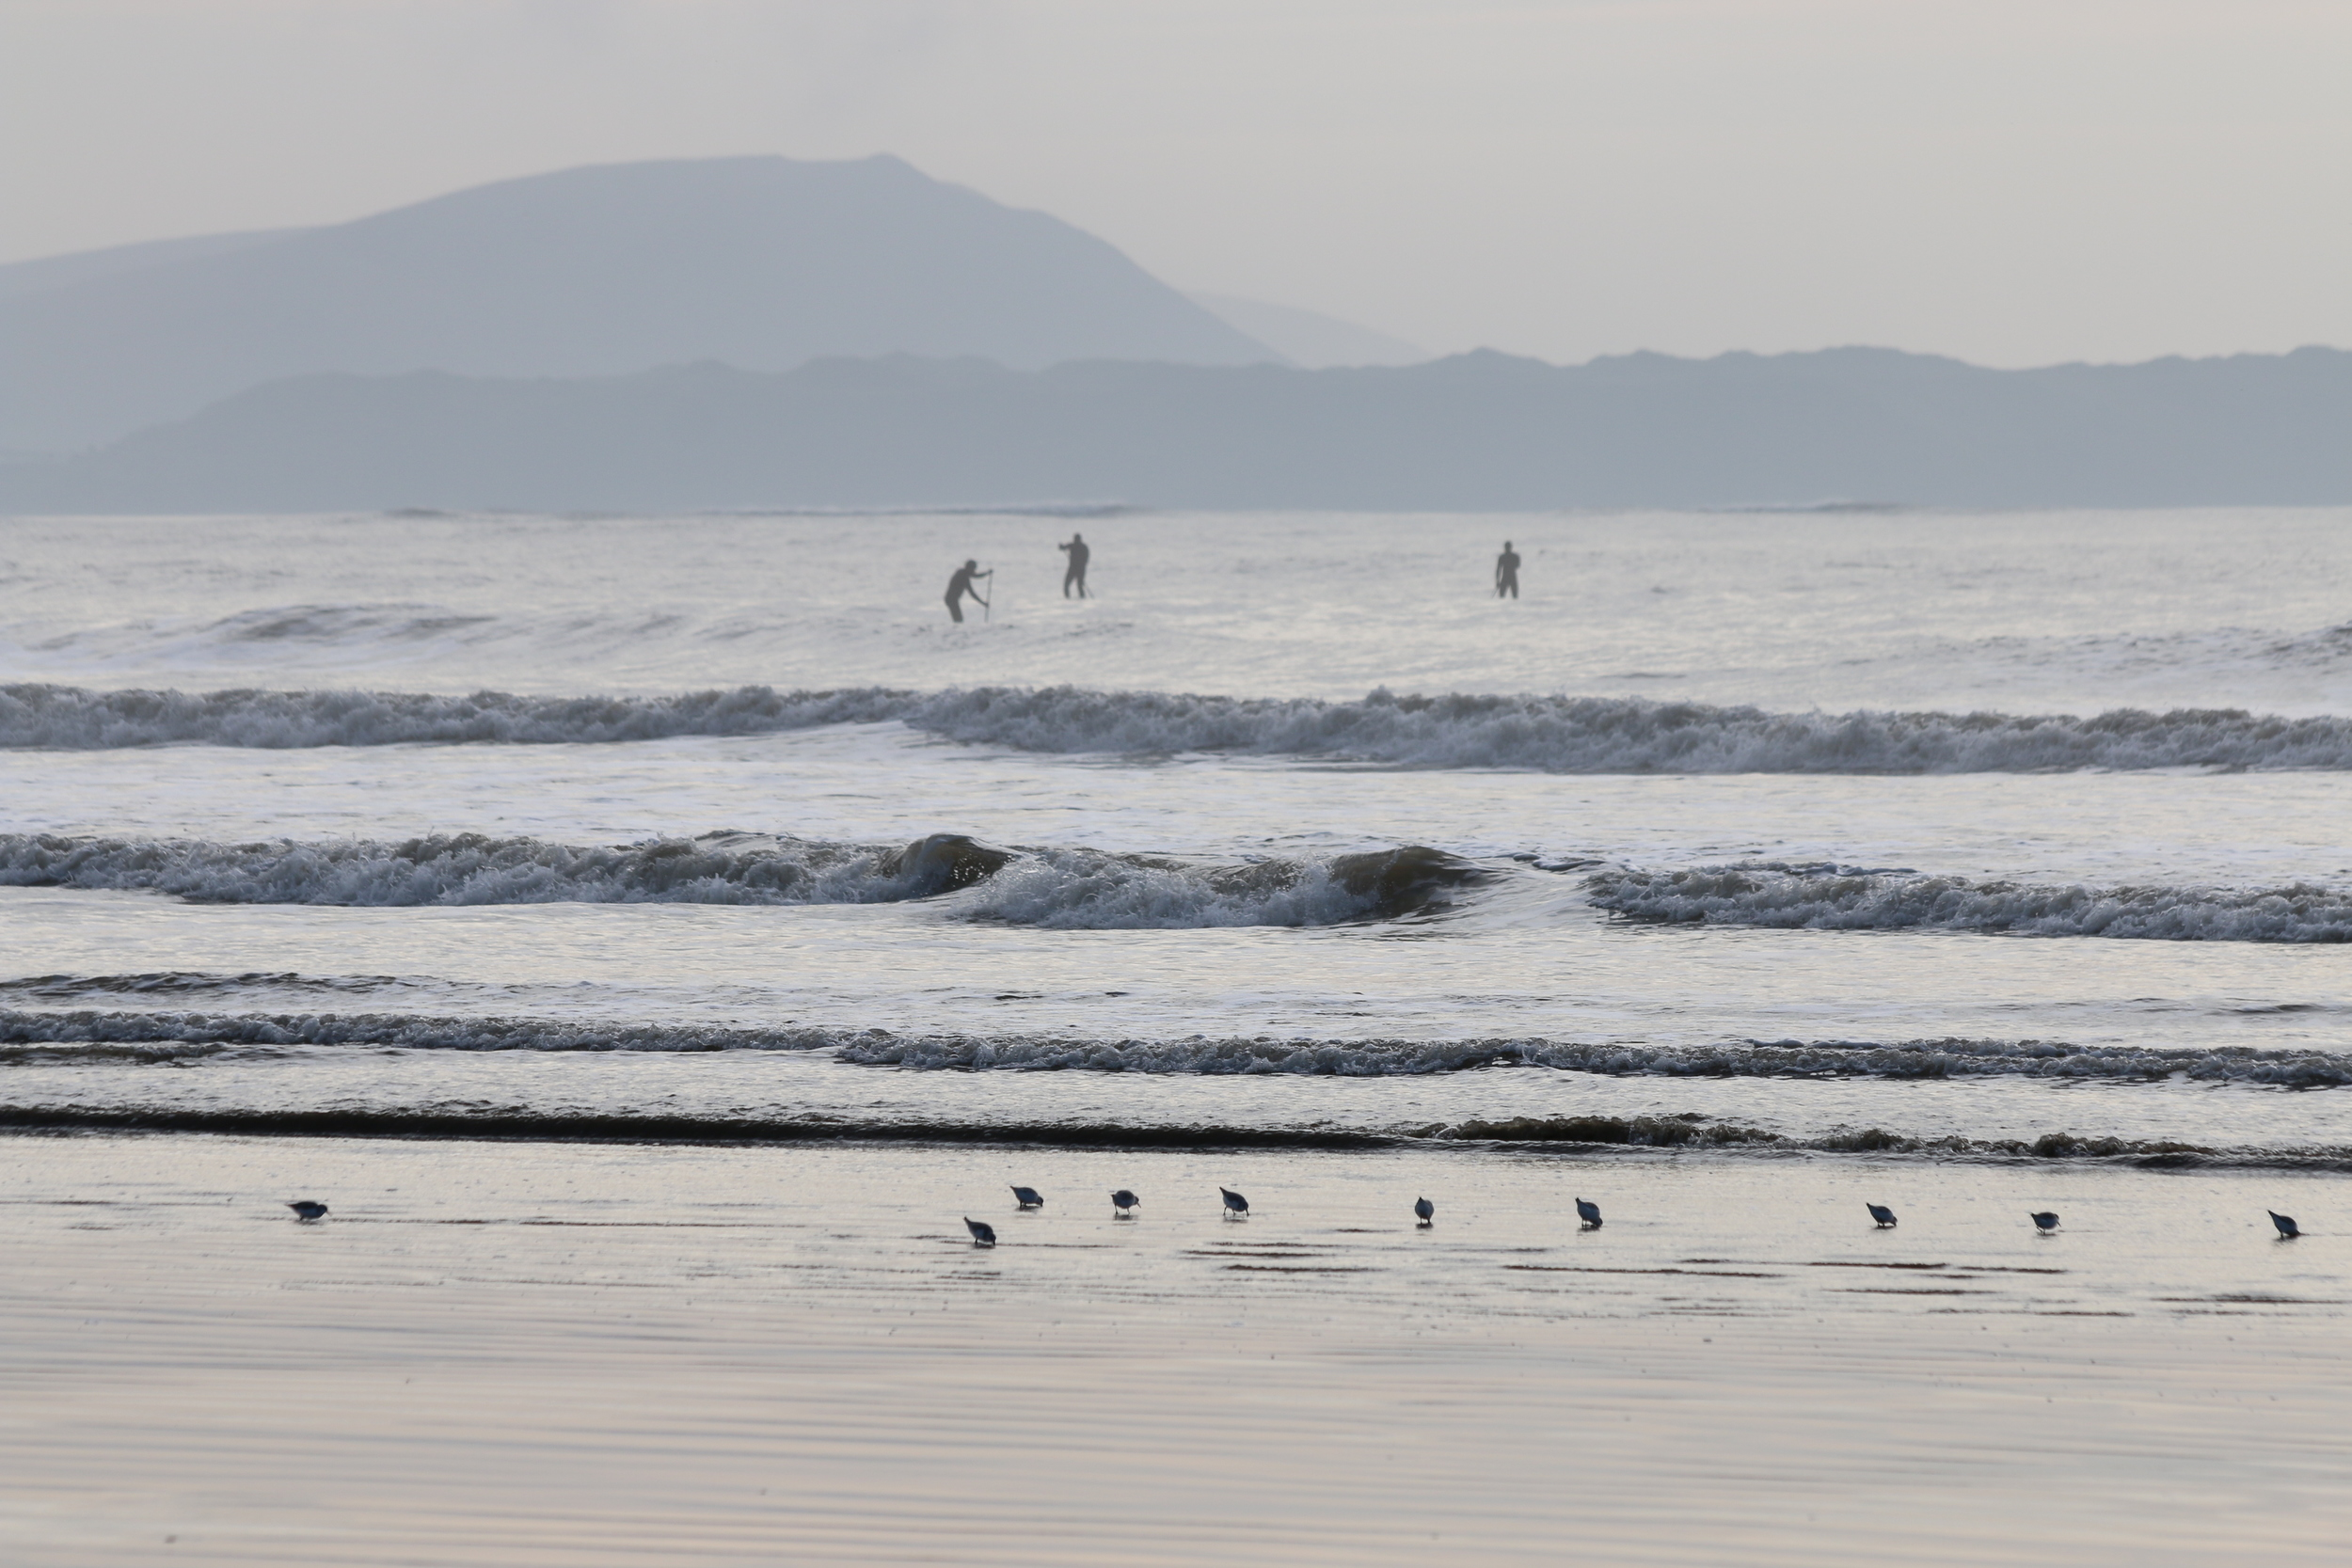 Stand-up-paddleboarders and sandpipers: Cefn Sidan.